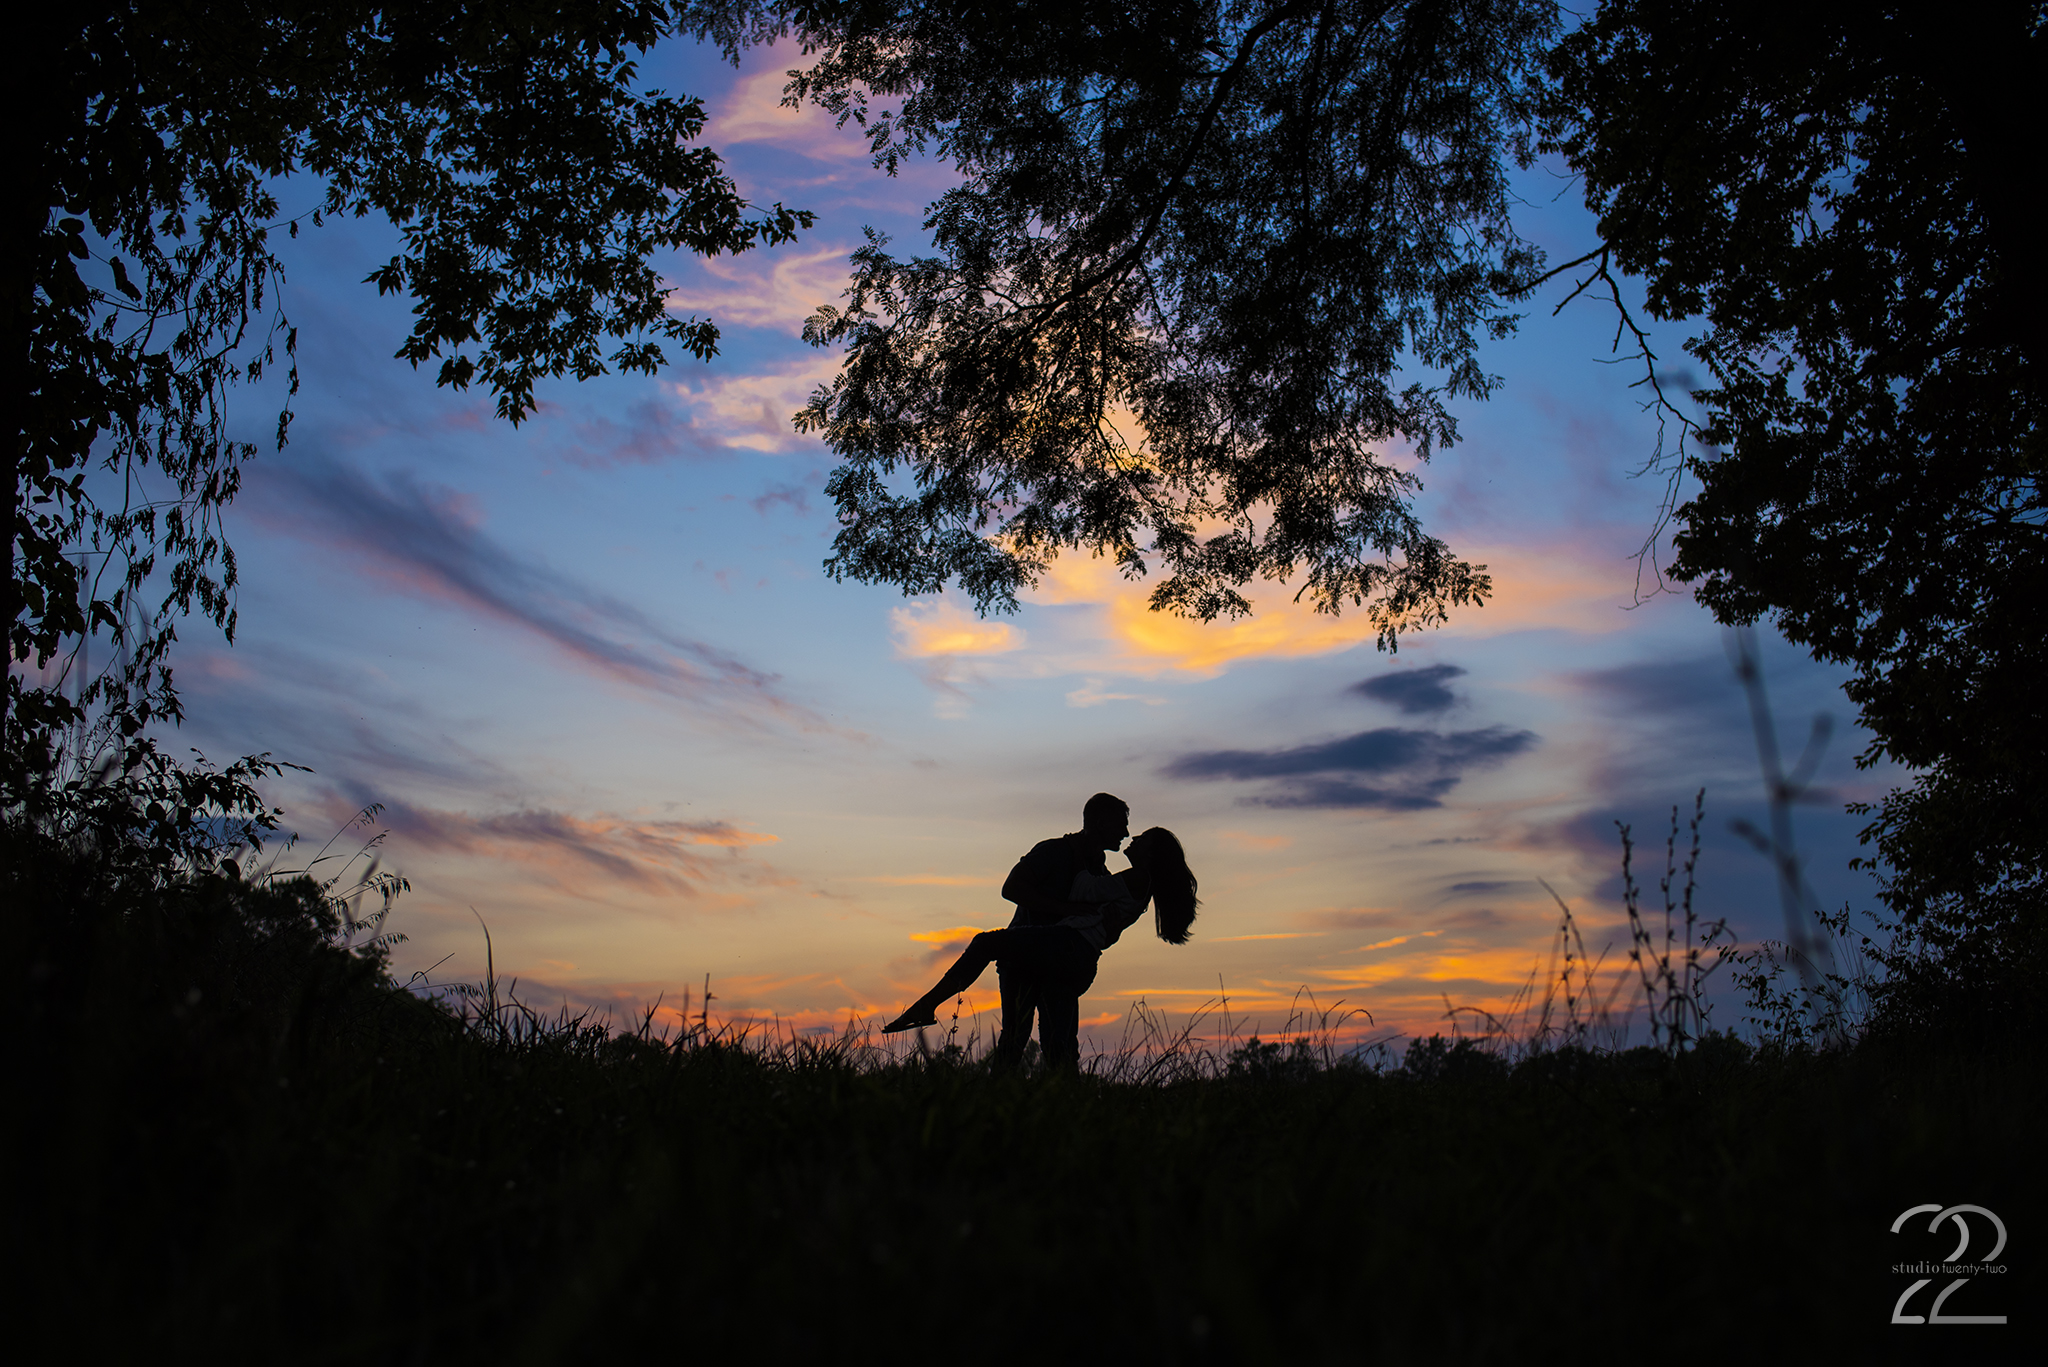 Man dips woman in a field at sunset in Dayton, Ohio by Dayton Wedding Photographer Studio 22 Photography